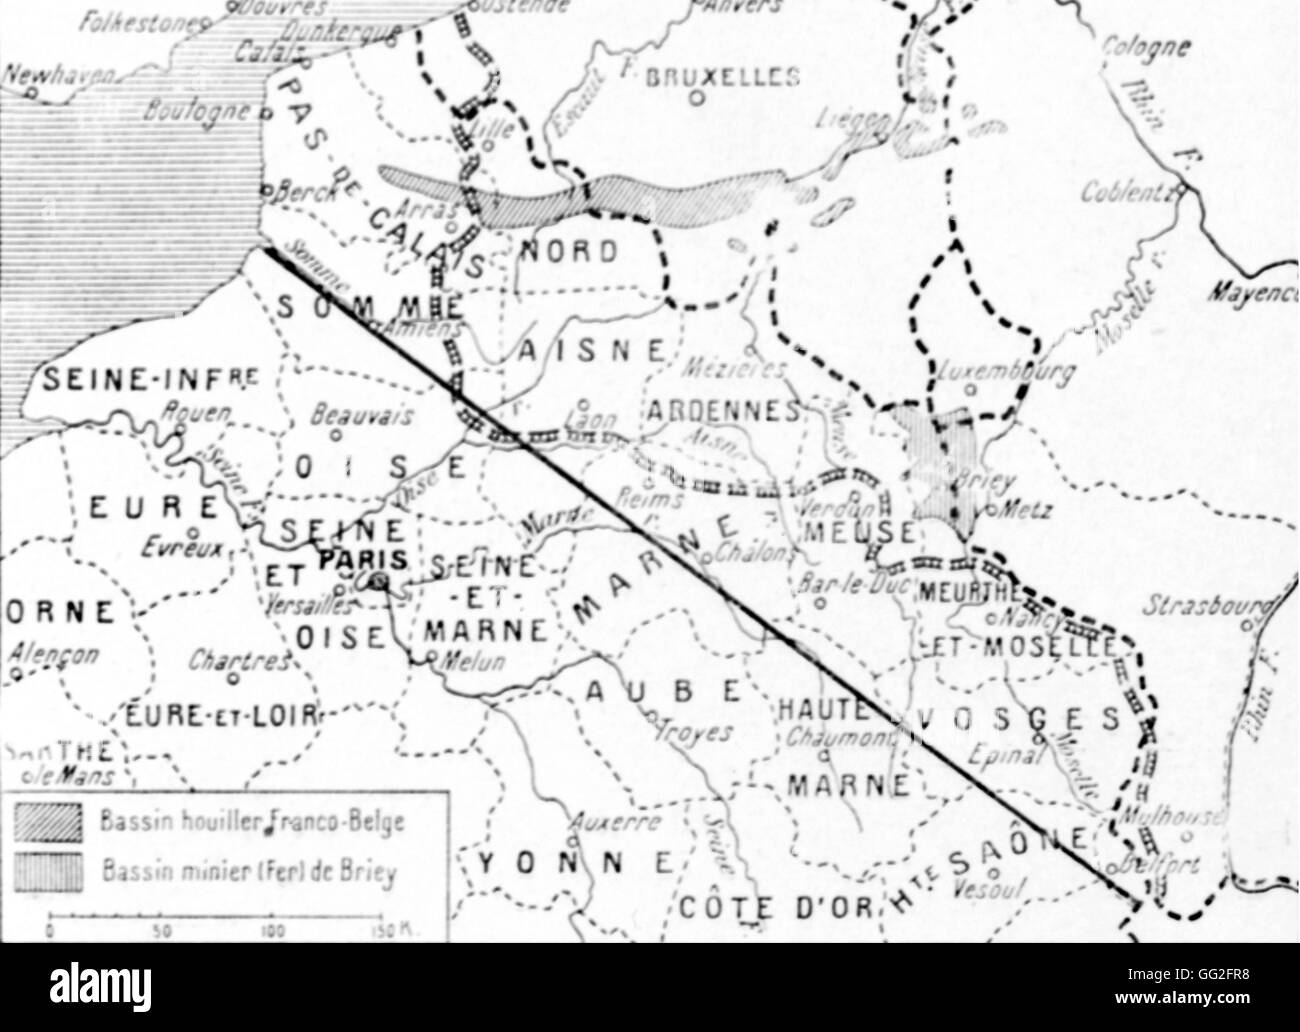 First world war map of german claims in the north east of france first world war map of german claims in the north east of france the line joining the mouth of the river somme in belfort marks the boundary of claimed gumiabroncs Images